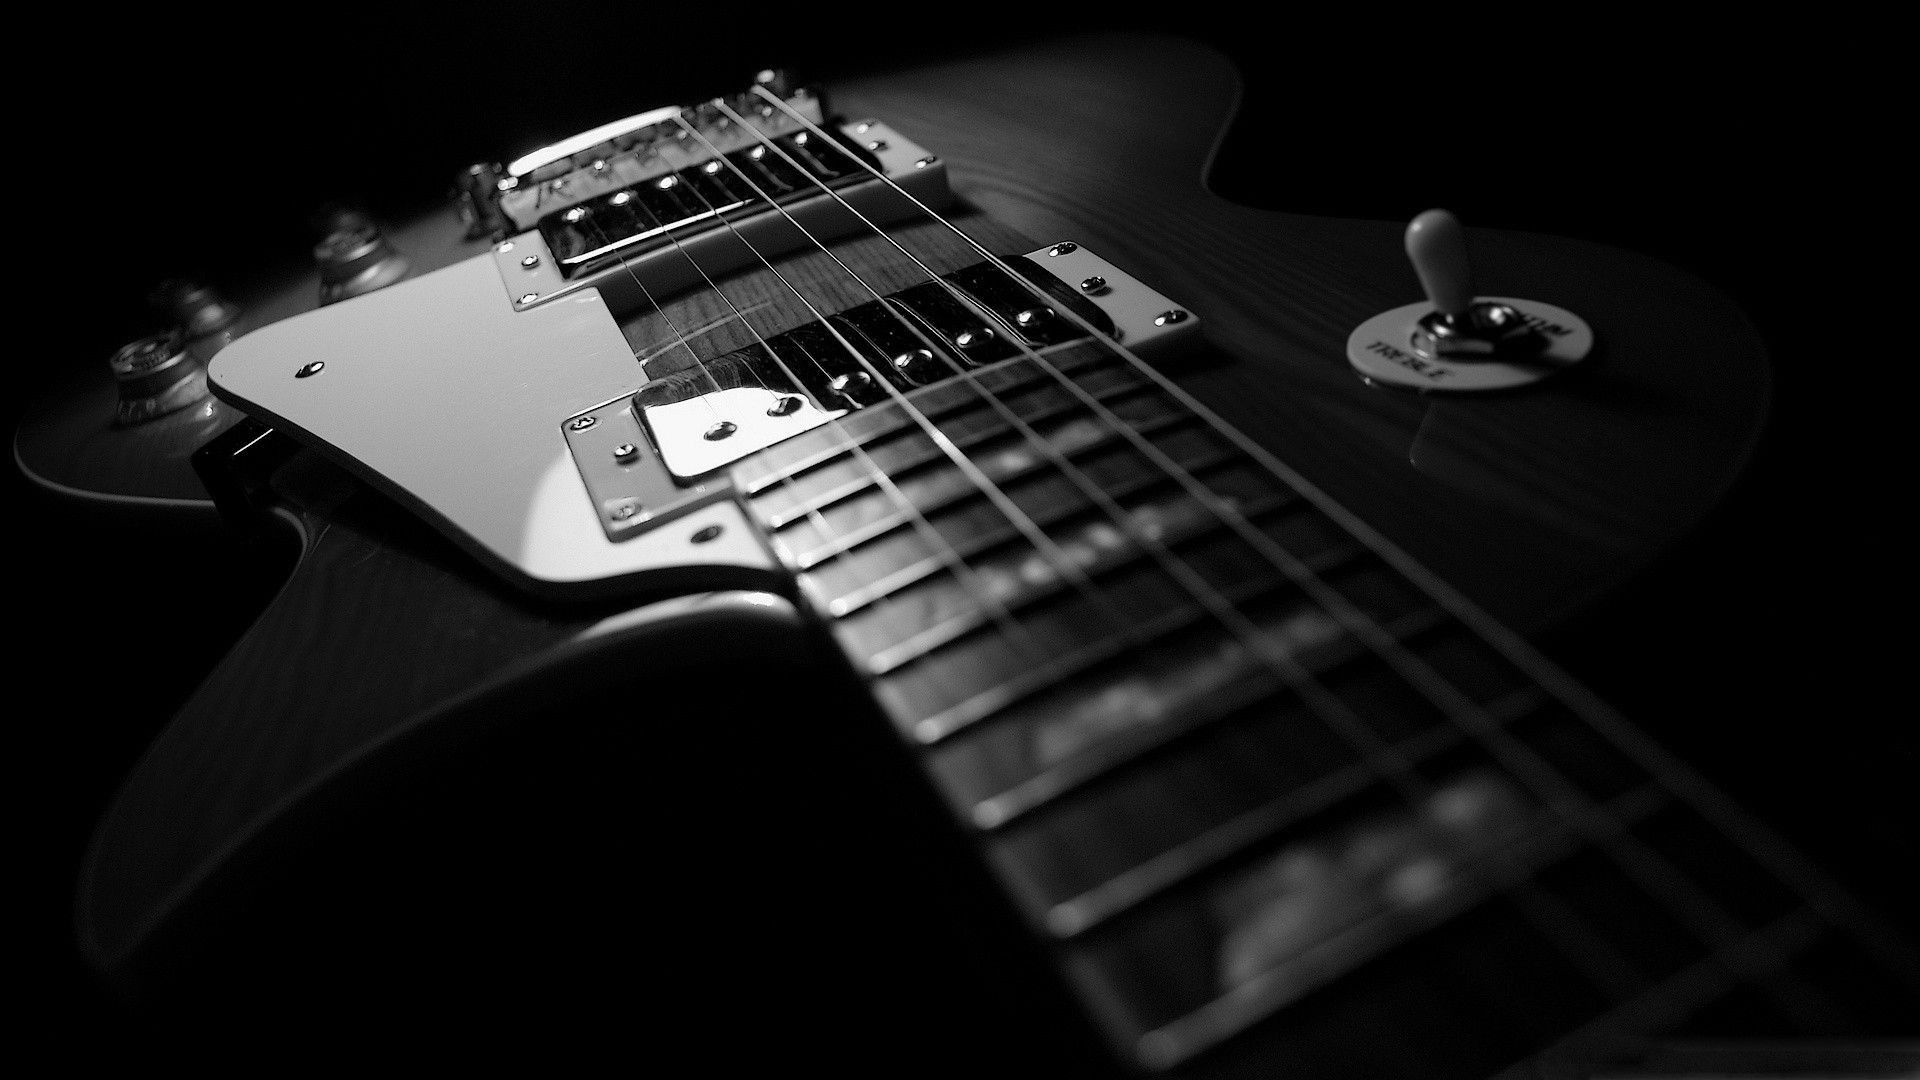 1920x1080 Cool Guitar Wallpapers for Desktop: August , 1920×1080 Cool Guitar  Backgrounds (50